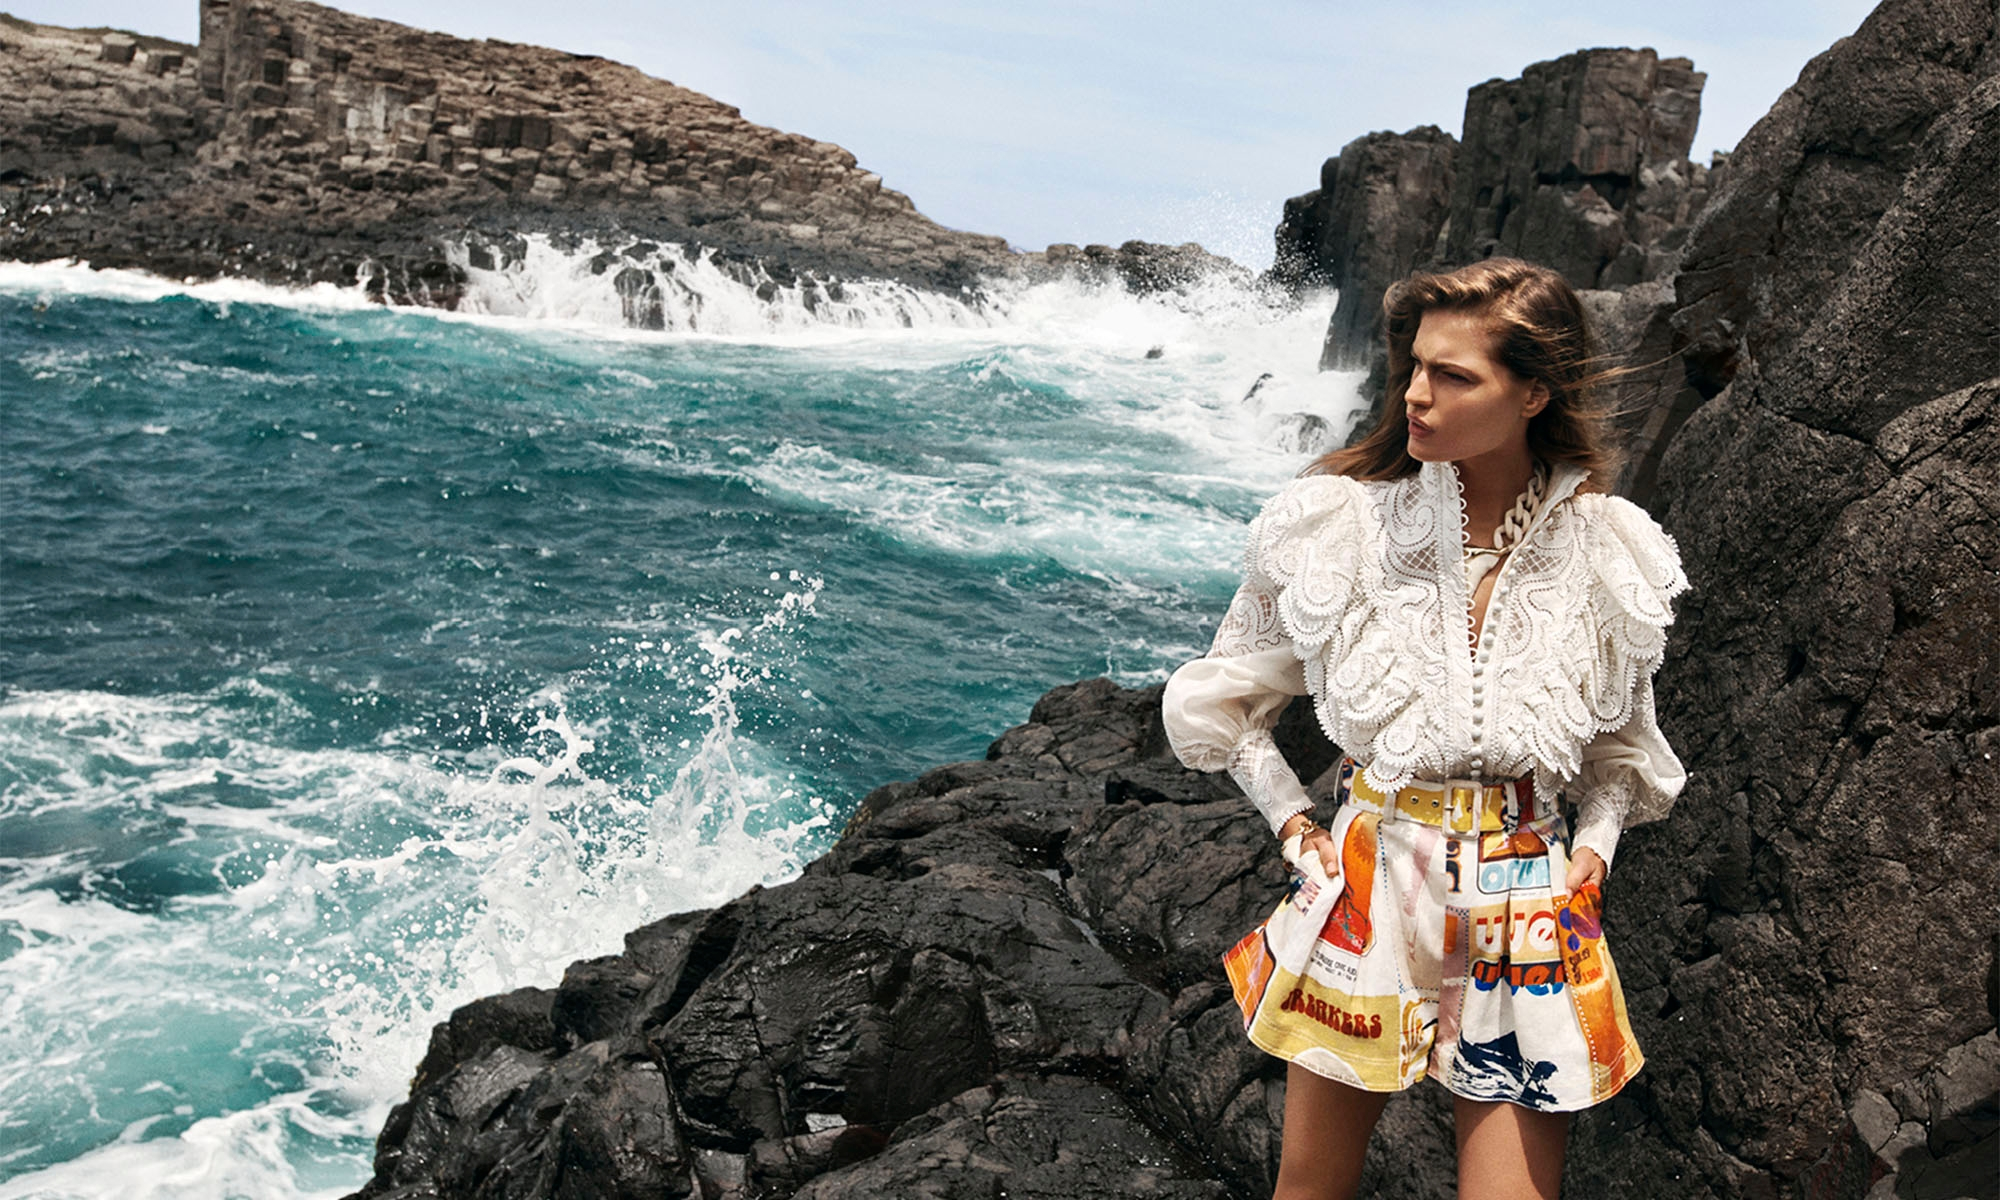 WOMAN STANDING ON THE ROCKS BY THE OCEAN WEARING 7802TGLA Glassy Wave Blouse, Ivory, 5789ABRI Brightside Flared Shorts, Golden Poster Print